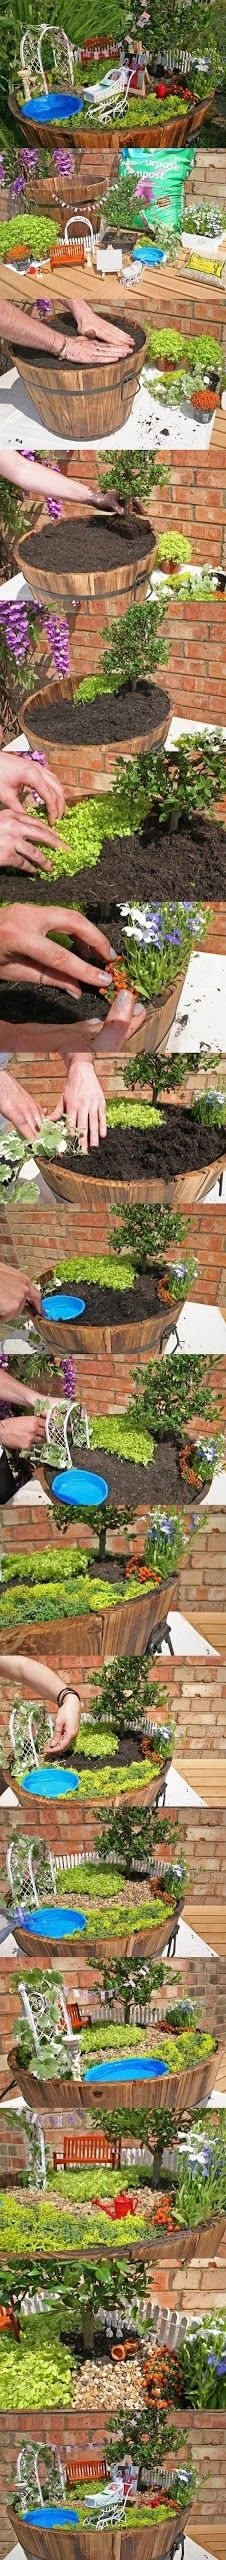 DIY Garden Fantasy garden gardening garden decor small garden ideas diy gardening garden ideas garden art diy garden diy darden gardening on a budget creative gardening ideas